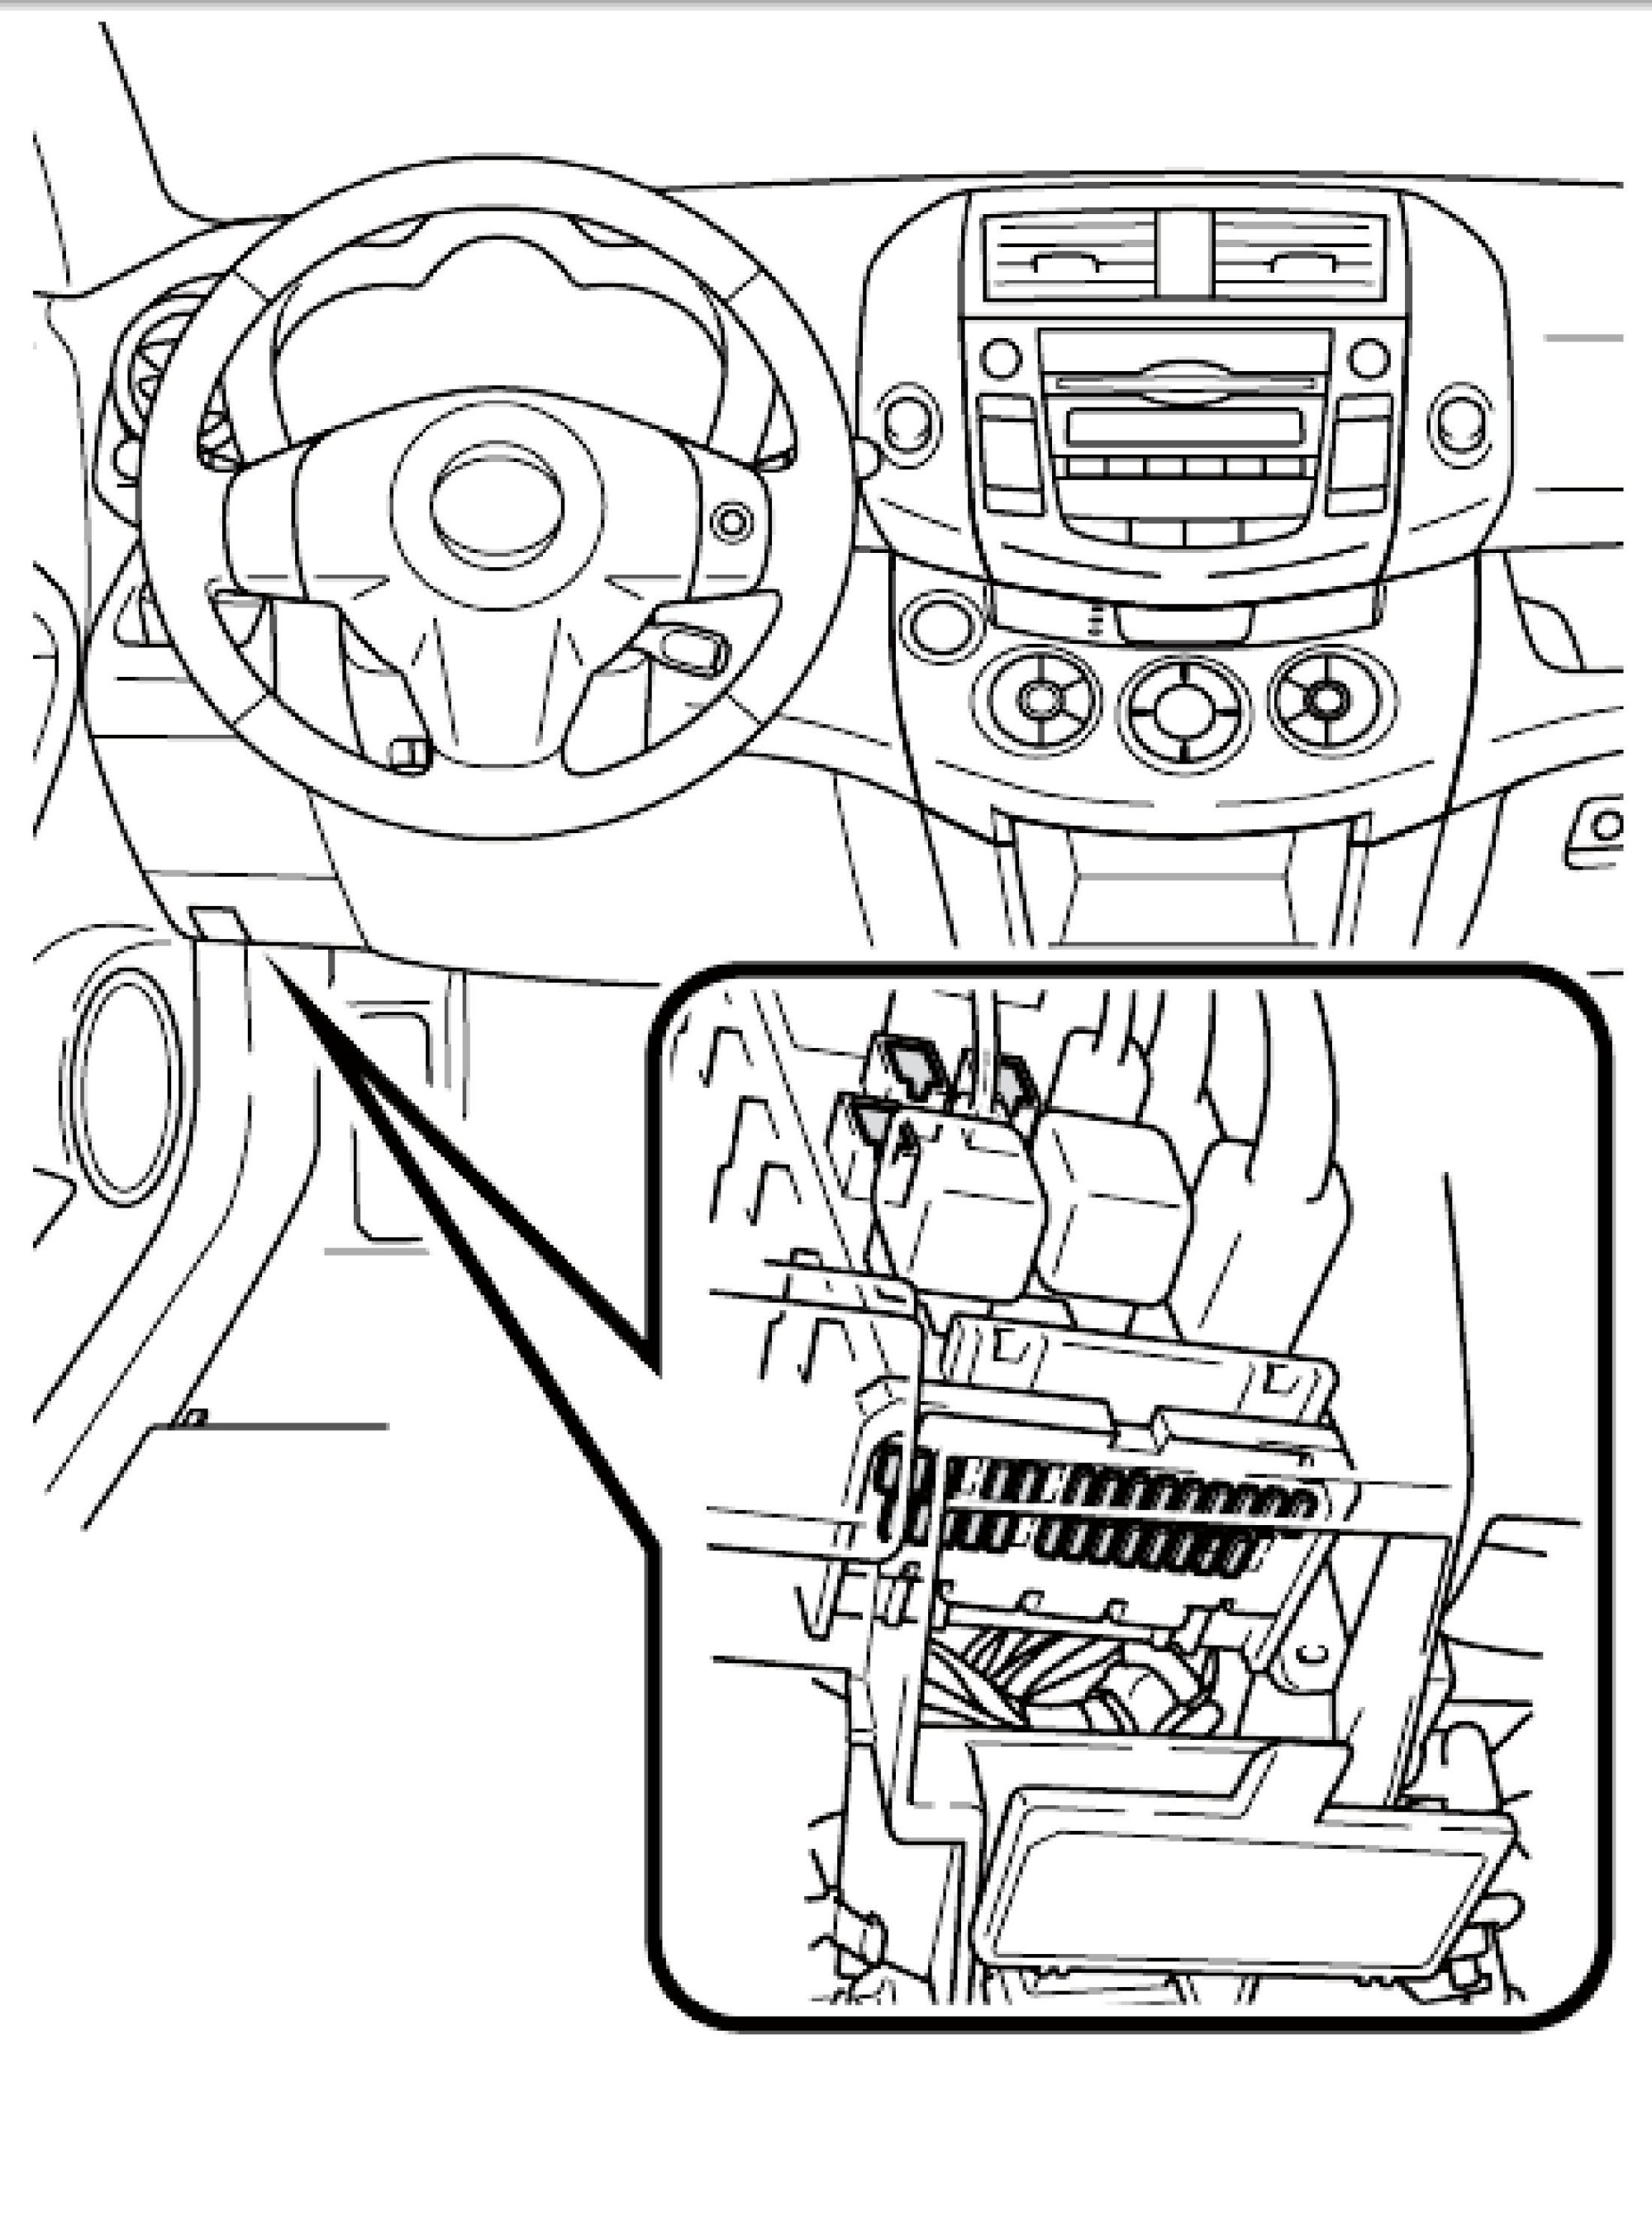 hight resolution of 1999 rav4 fuse box wiring diagram schematics 1999 jeep grand cherokee fuse box 1999 toyota rav4 fuse box